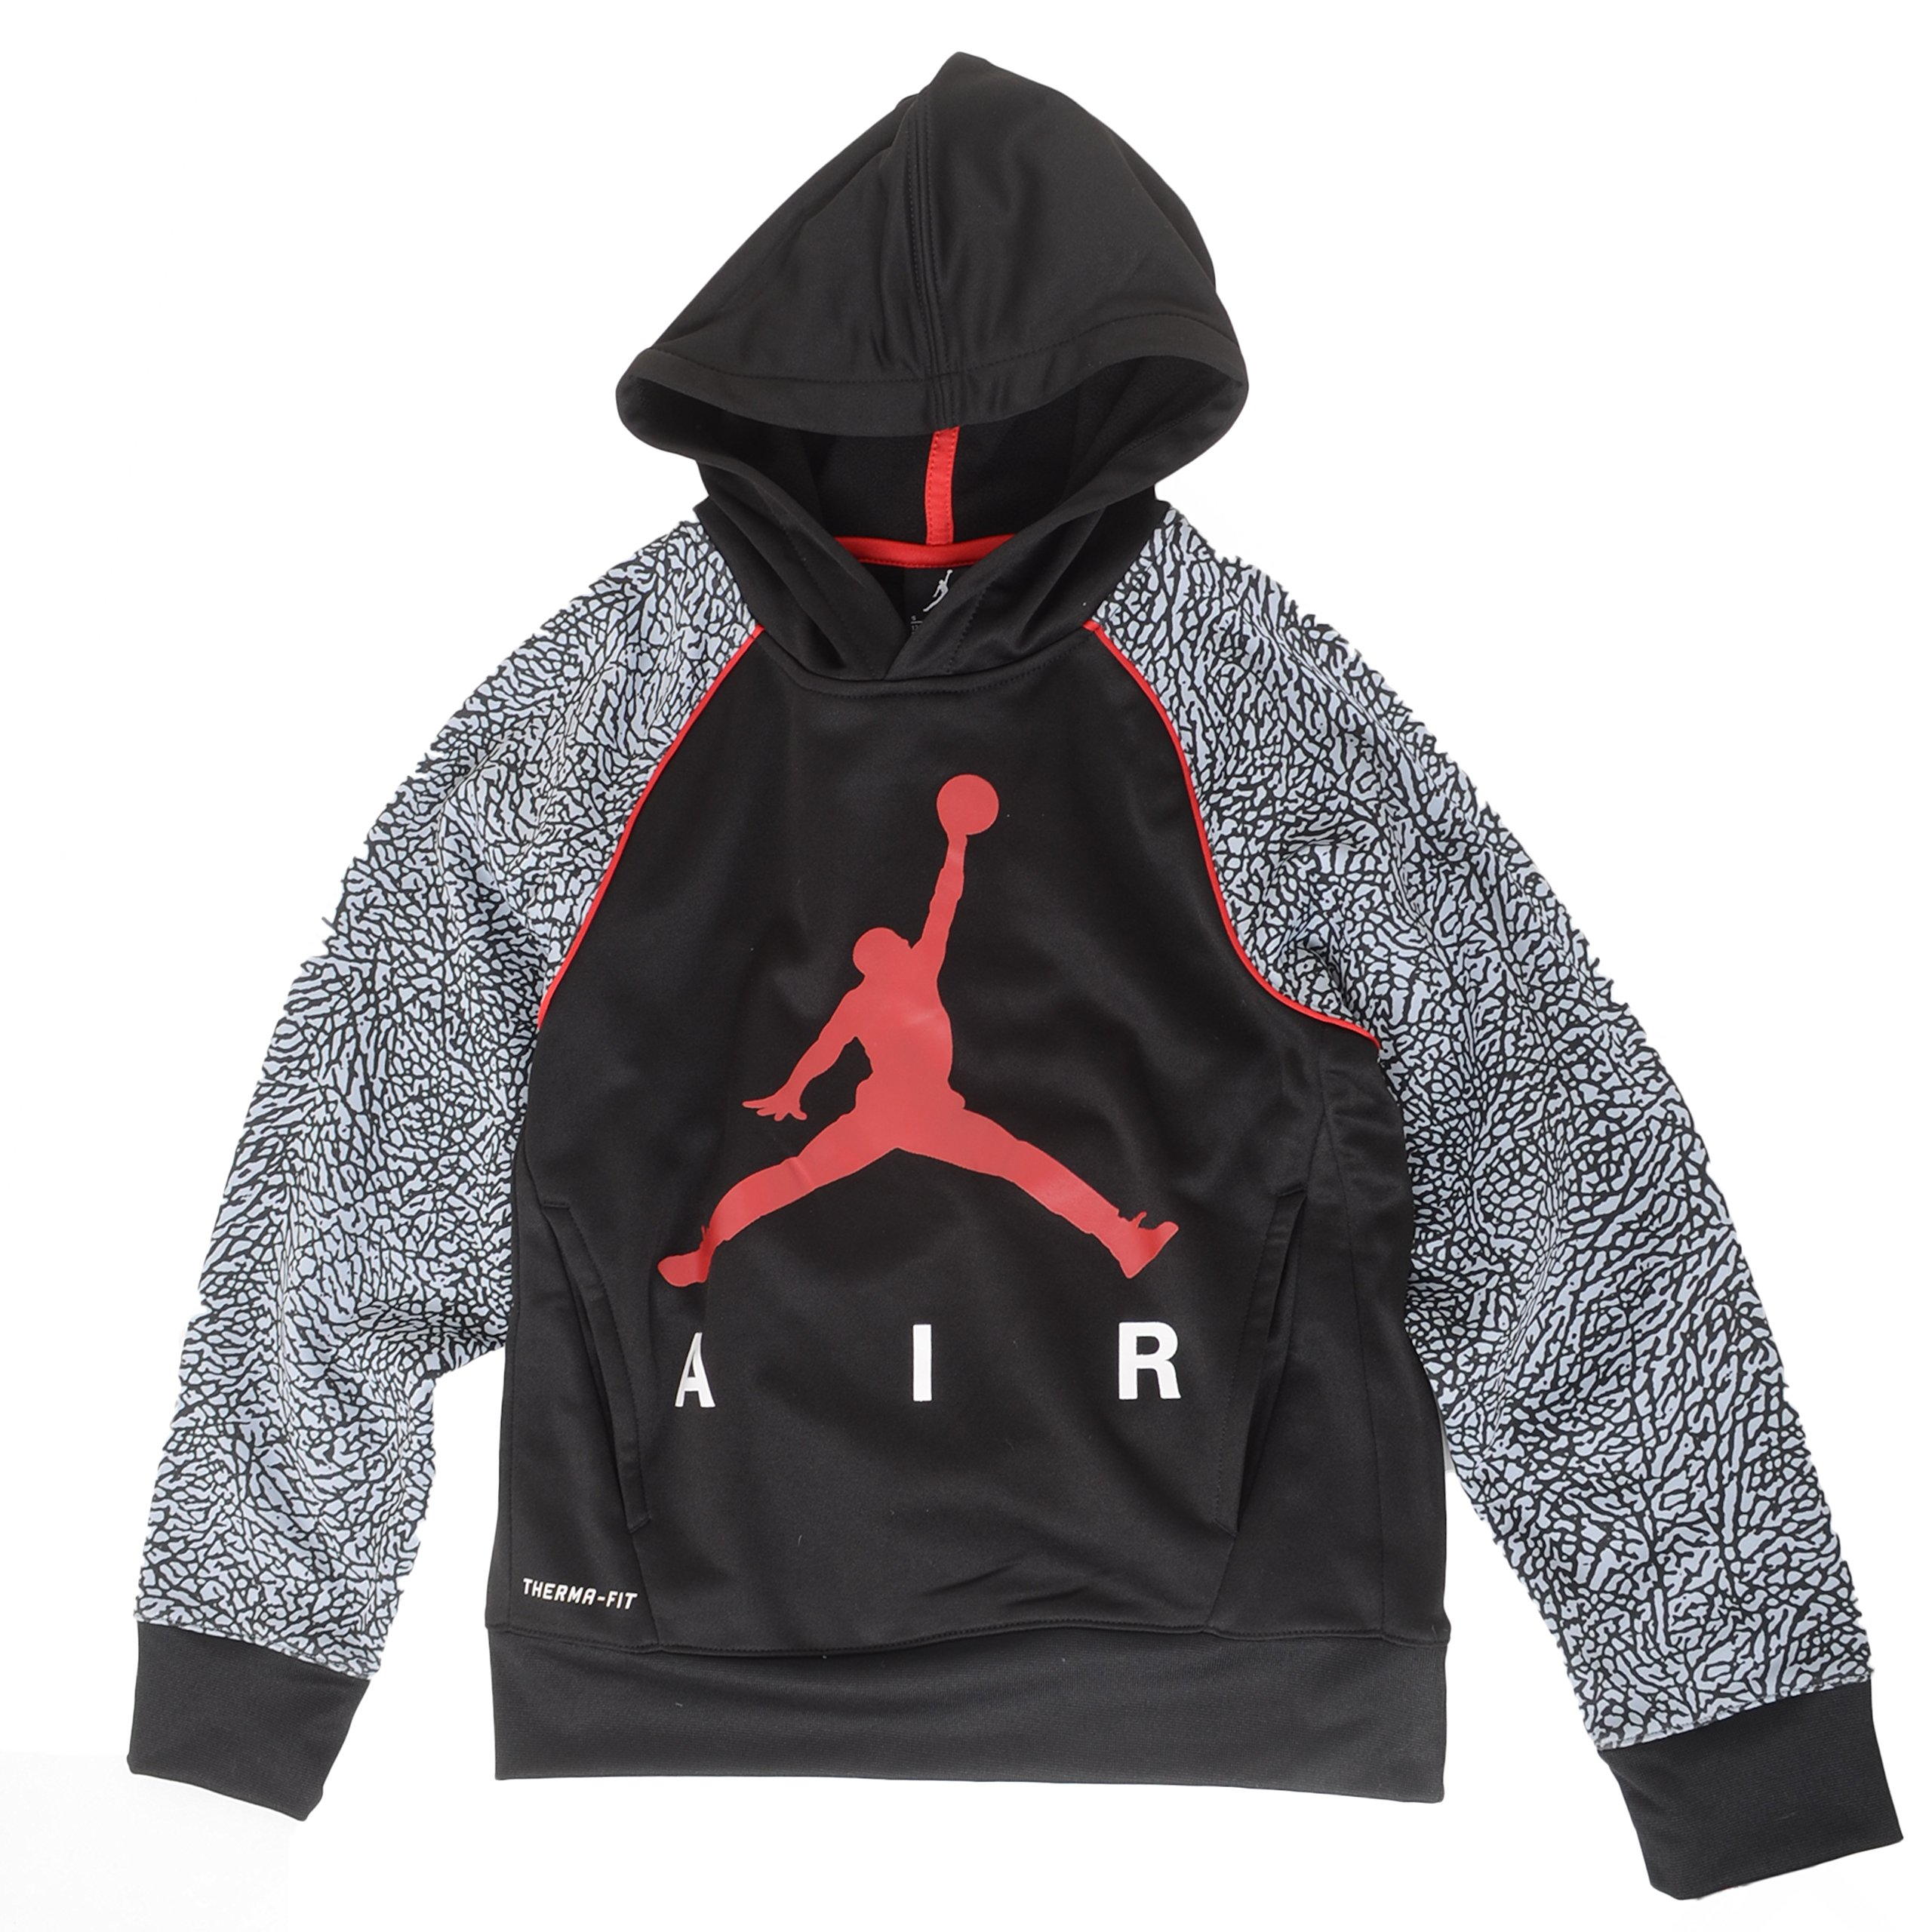 Jordan Big Boys Elephant Print Hoodie (M(10-12YRS), Black) by NIKE